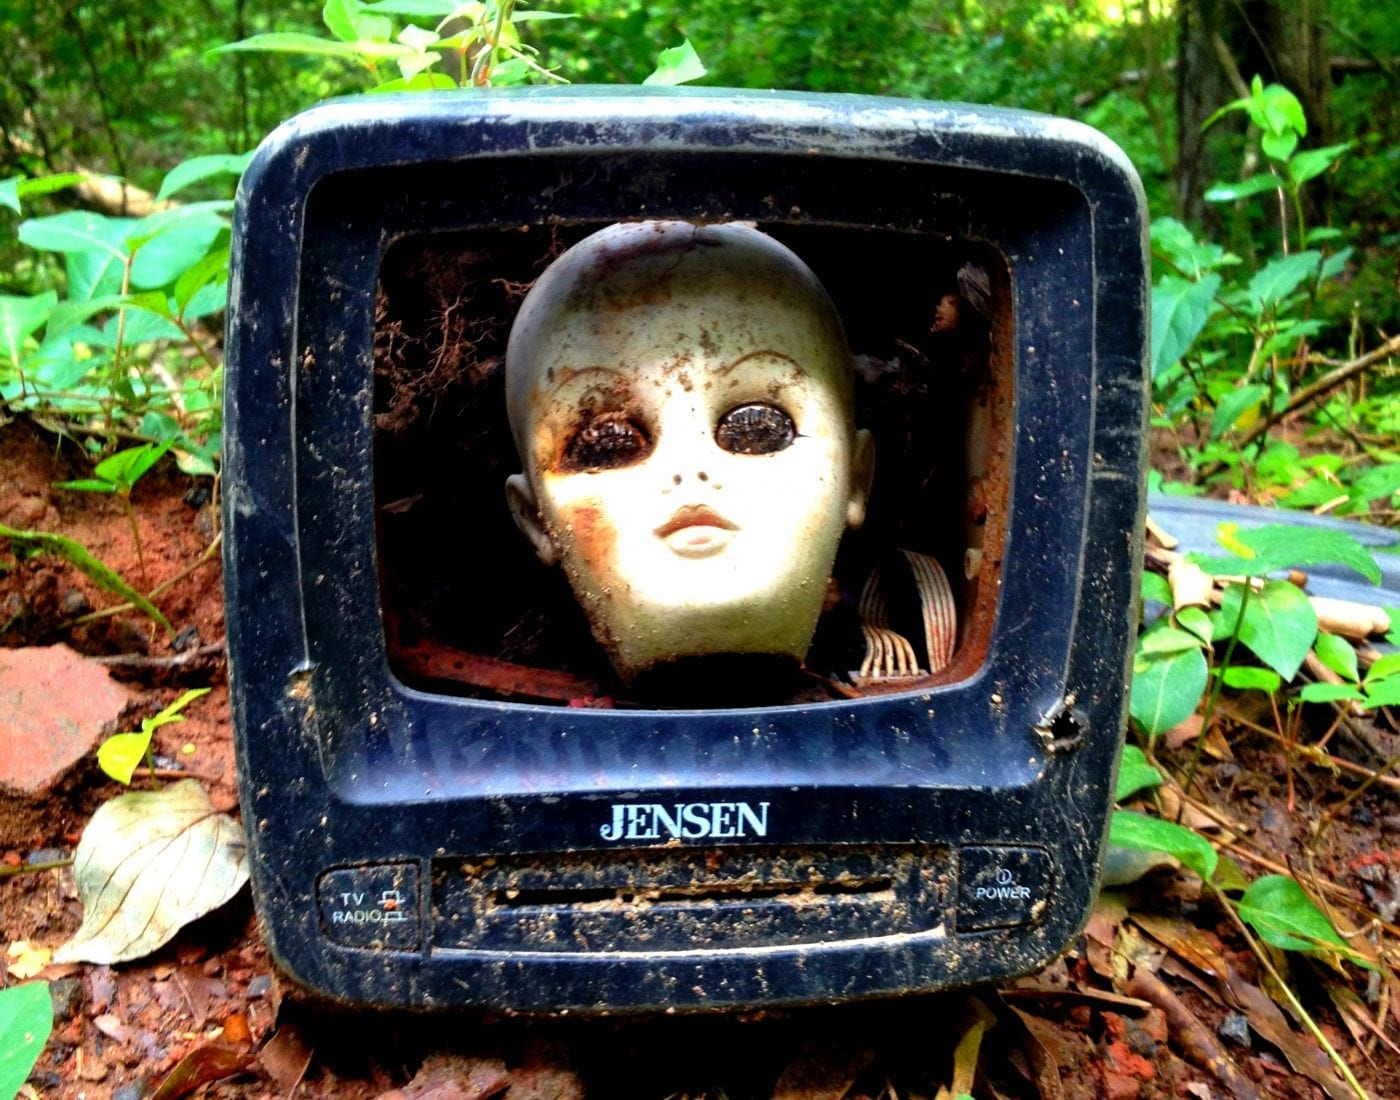 A-Doll-Head-in-a-Old-Television-Constitution-Lakes-Park-History-Atlanta-2014